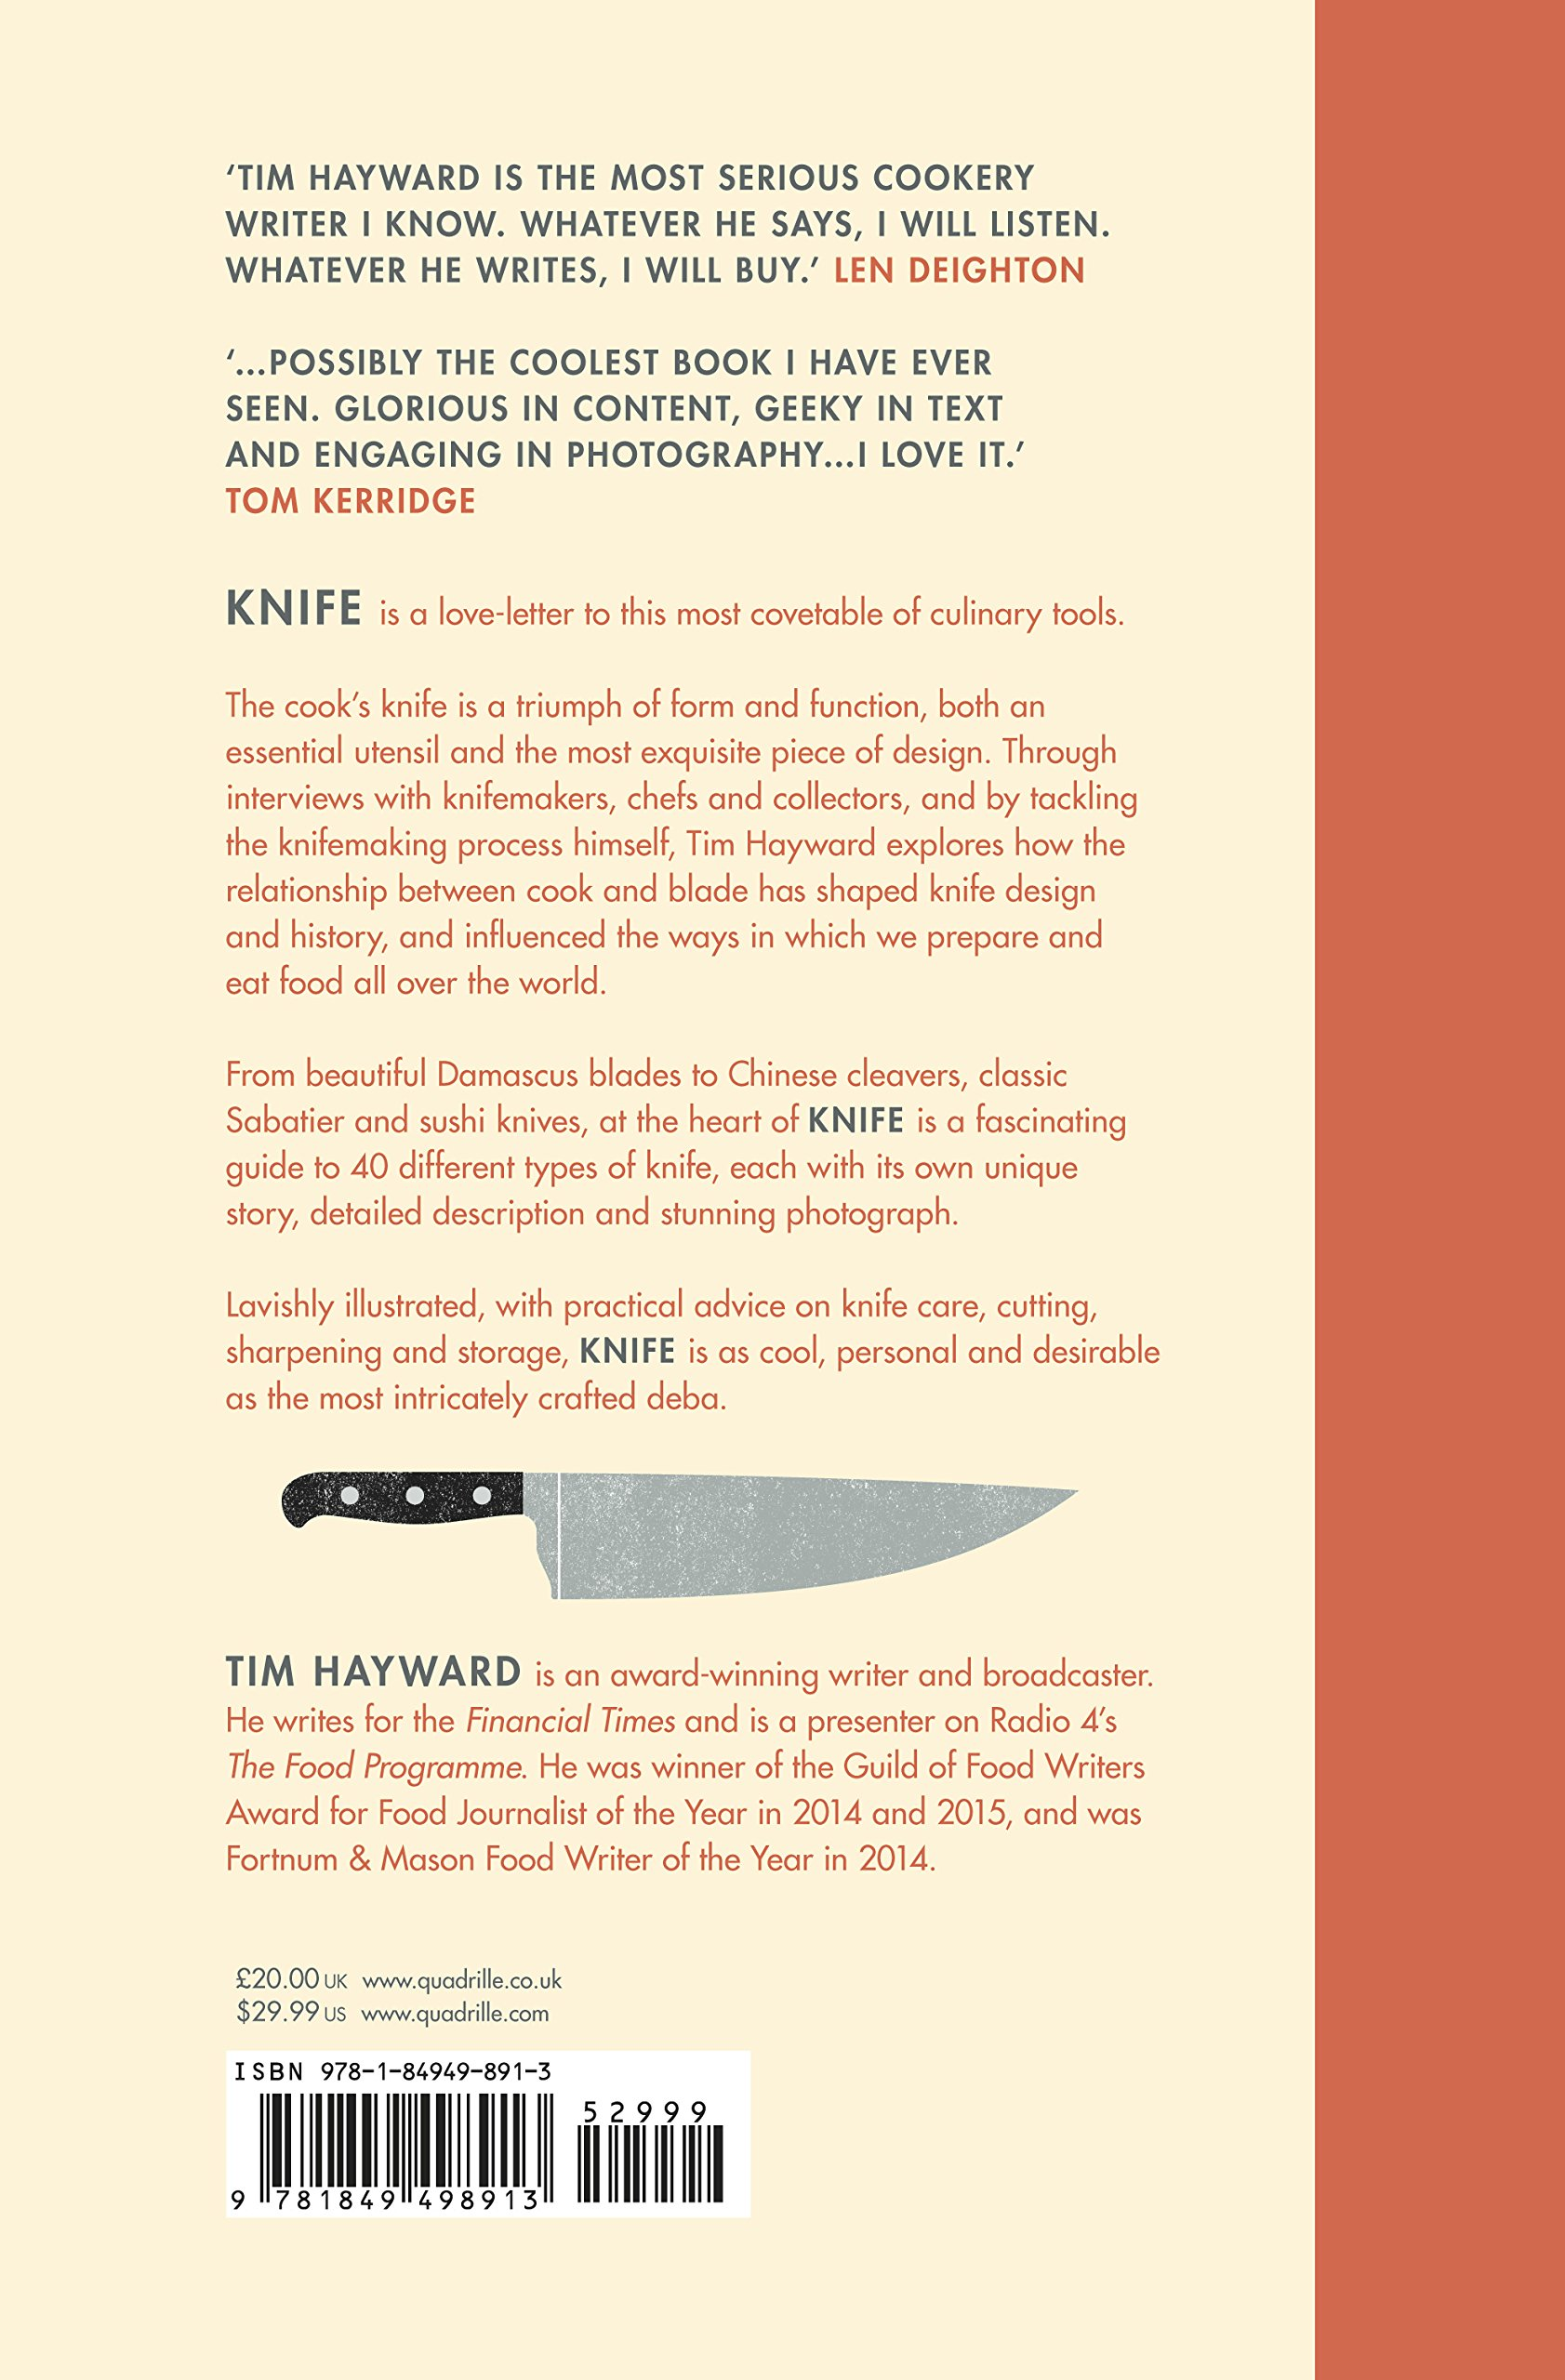 knife the cult craft and culture of the cook s knife amazon co knife the cult craft and culture of the cook s knife amazon co uk tim hayward 9781849498913 books